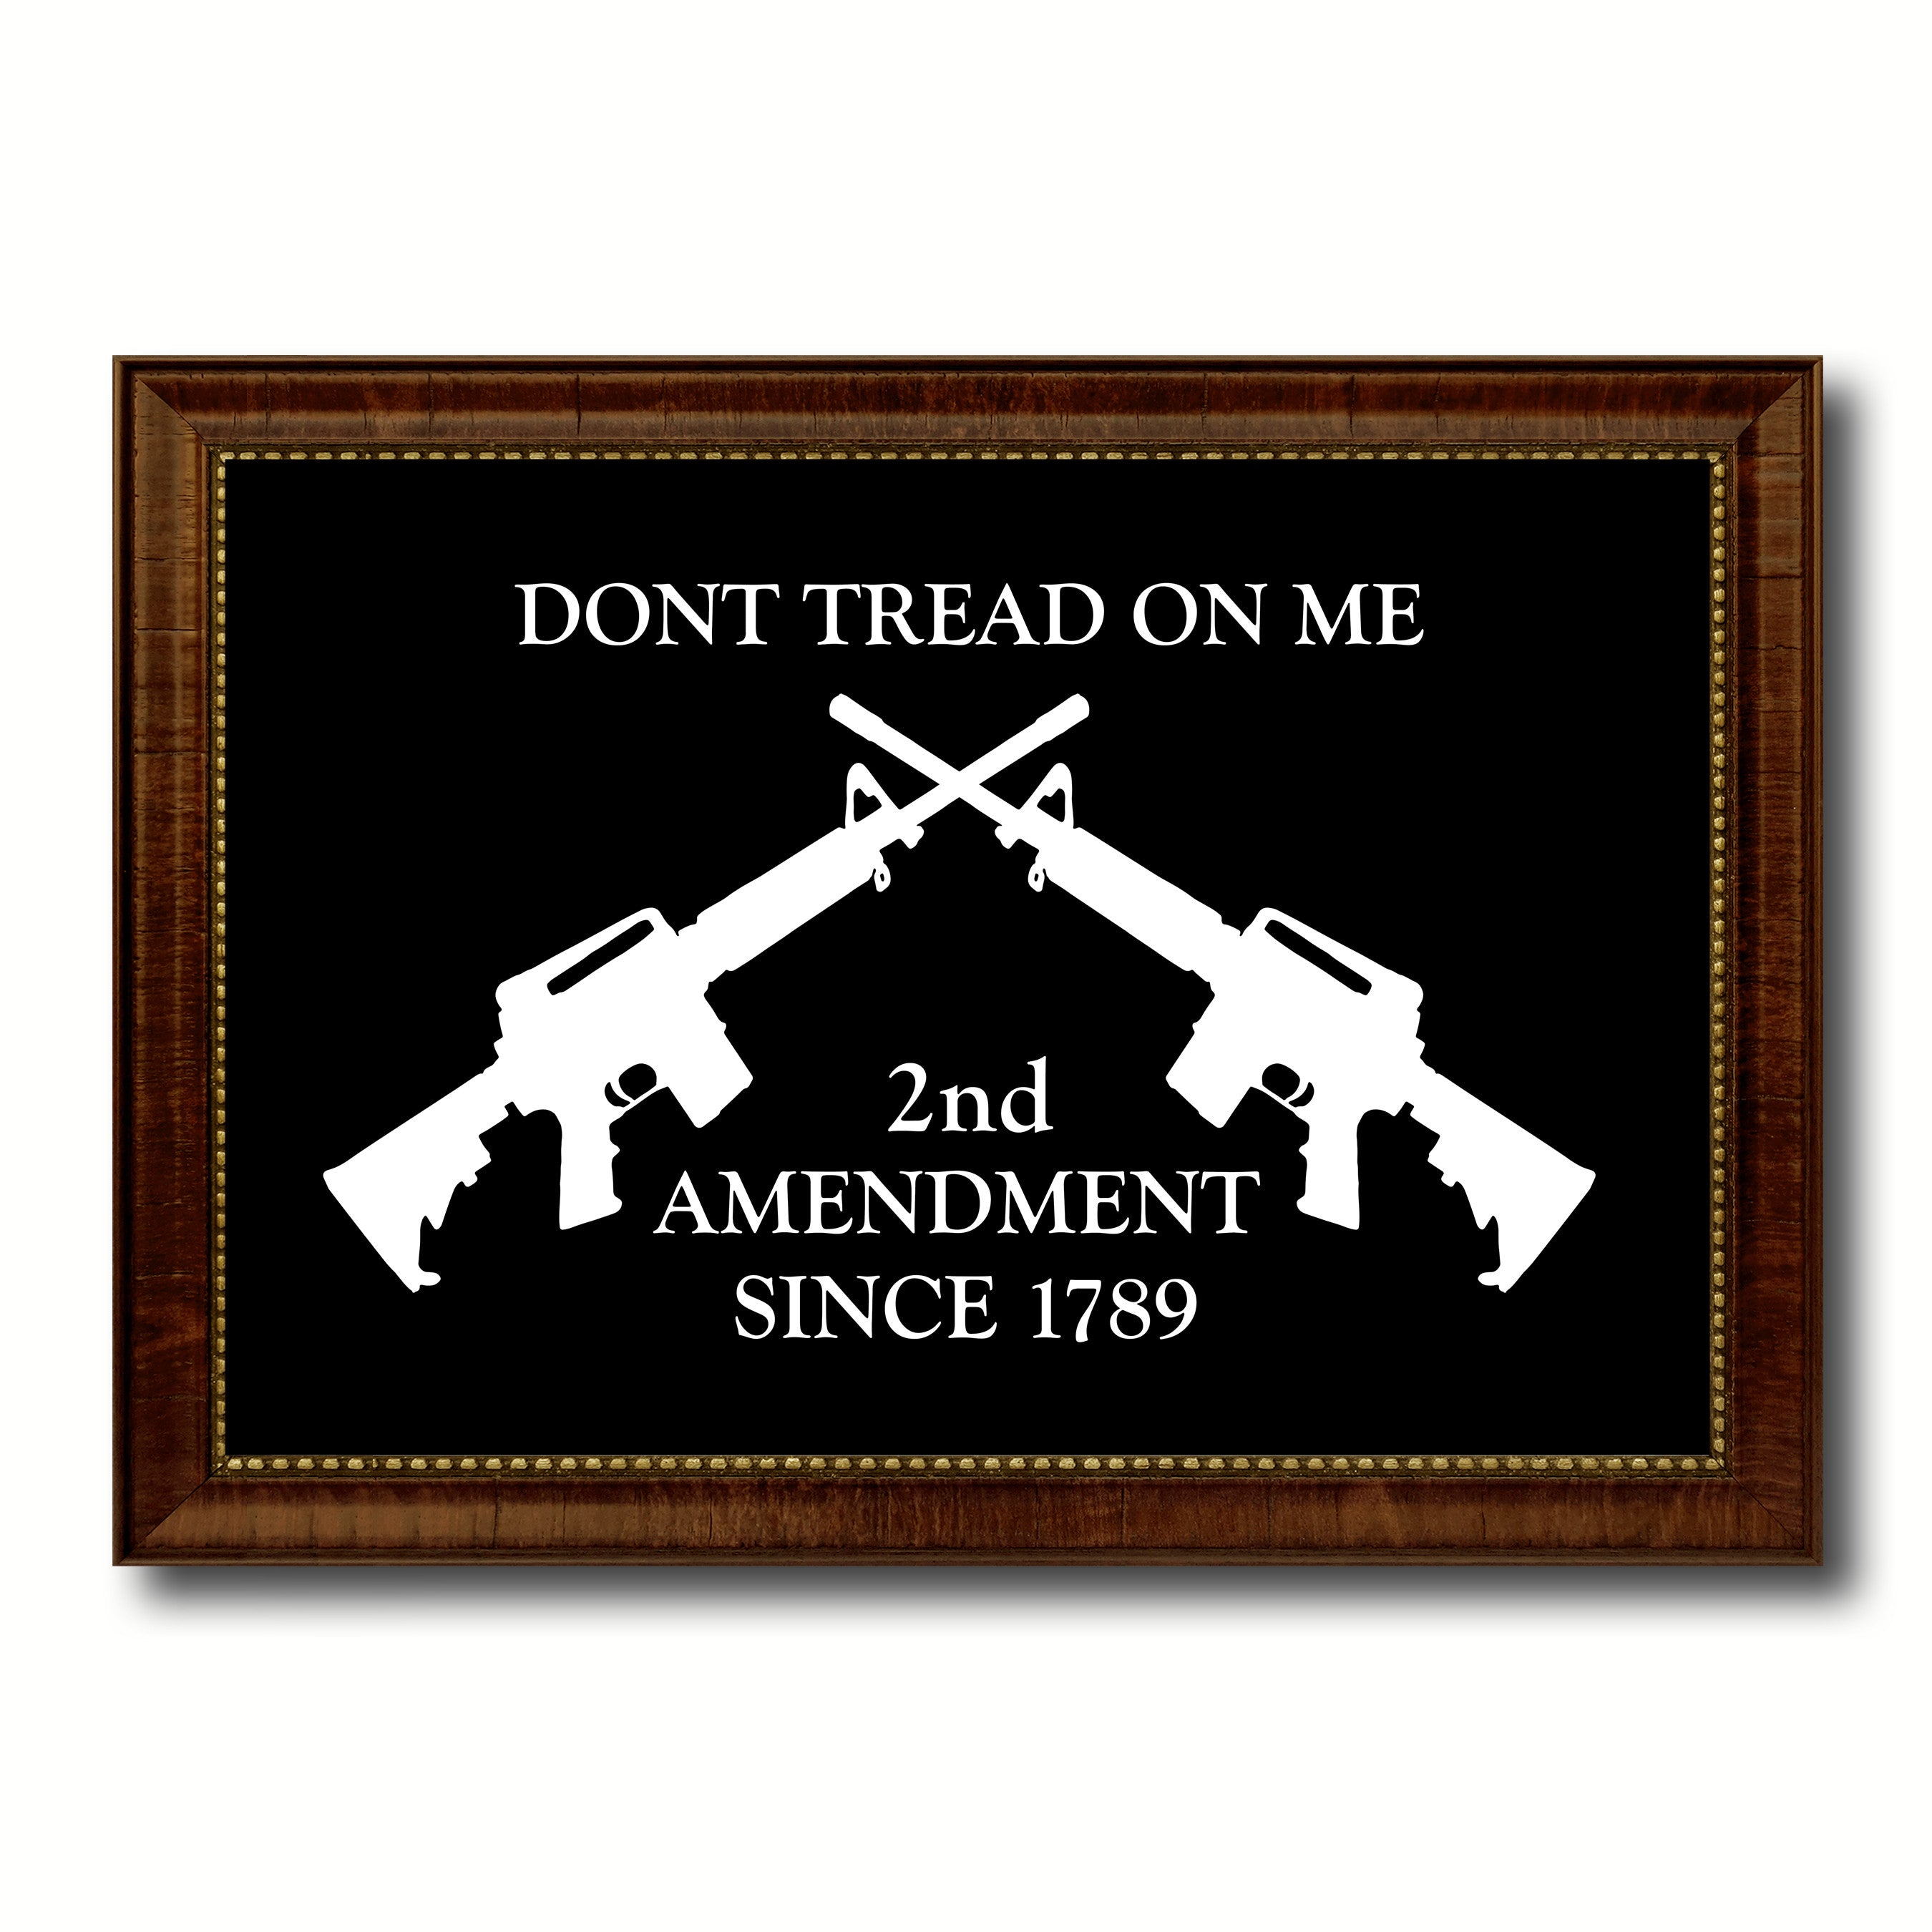 2nd Amendment Dont Tread On Me M4 Rifle Military Flag Canvas Print with Brown Picture Frame Home Decor Wall Art Gift Ideas